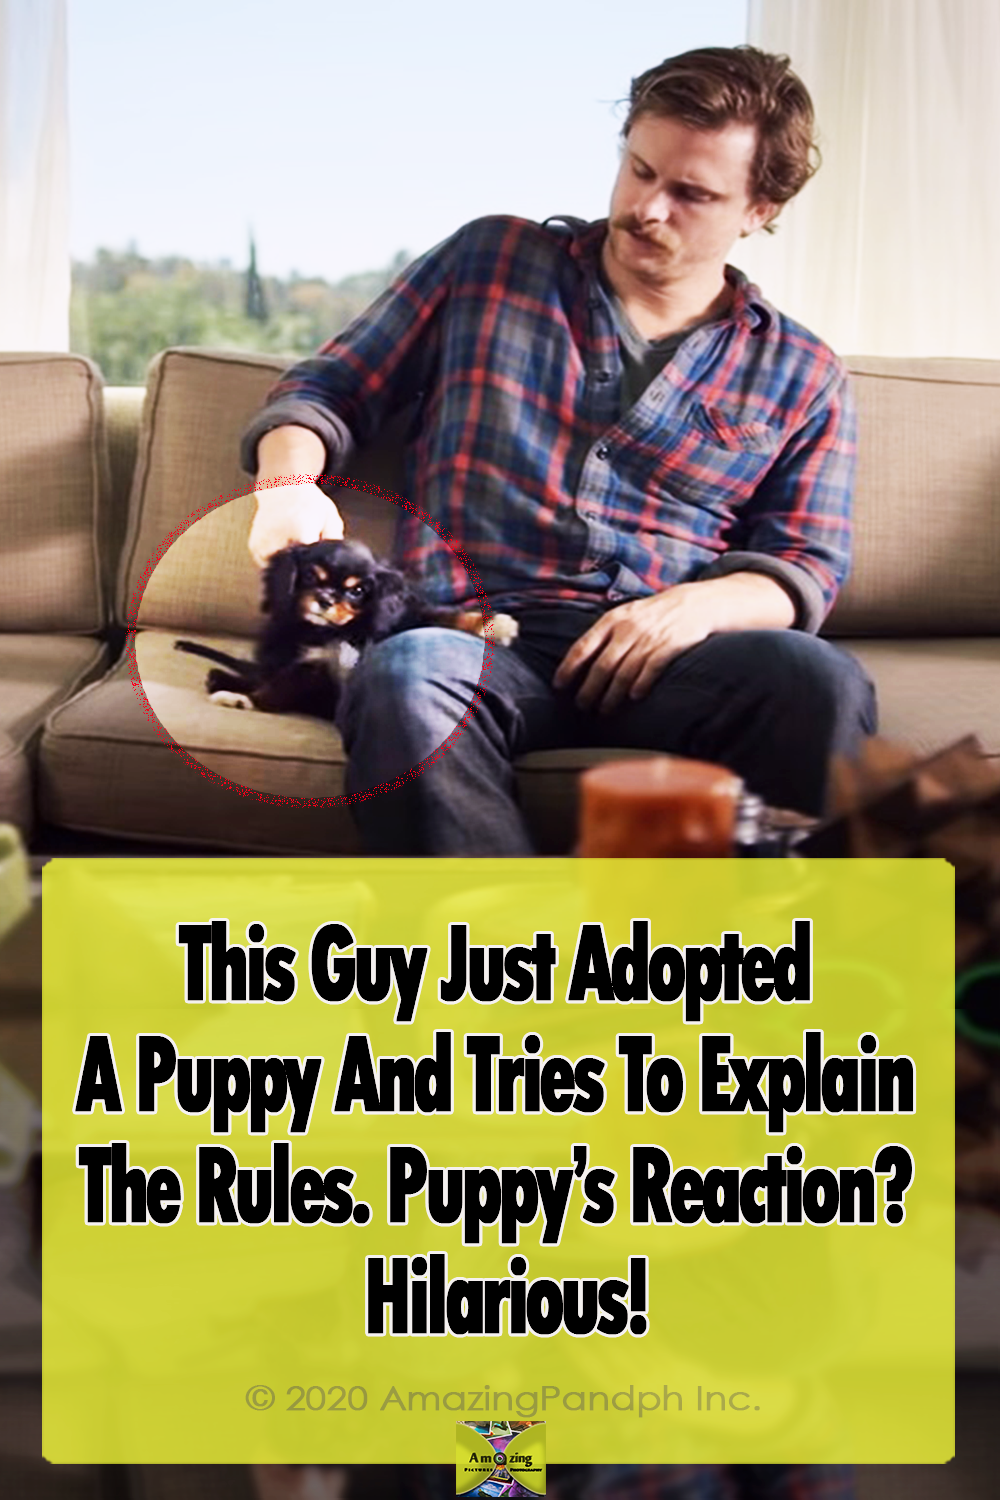 Puppy, adoption, ad, dogs, animals, pets, home rules,